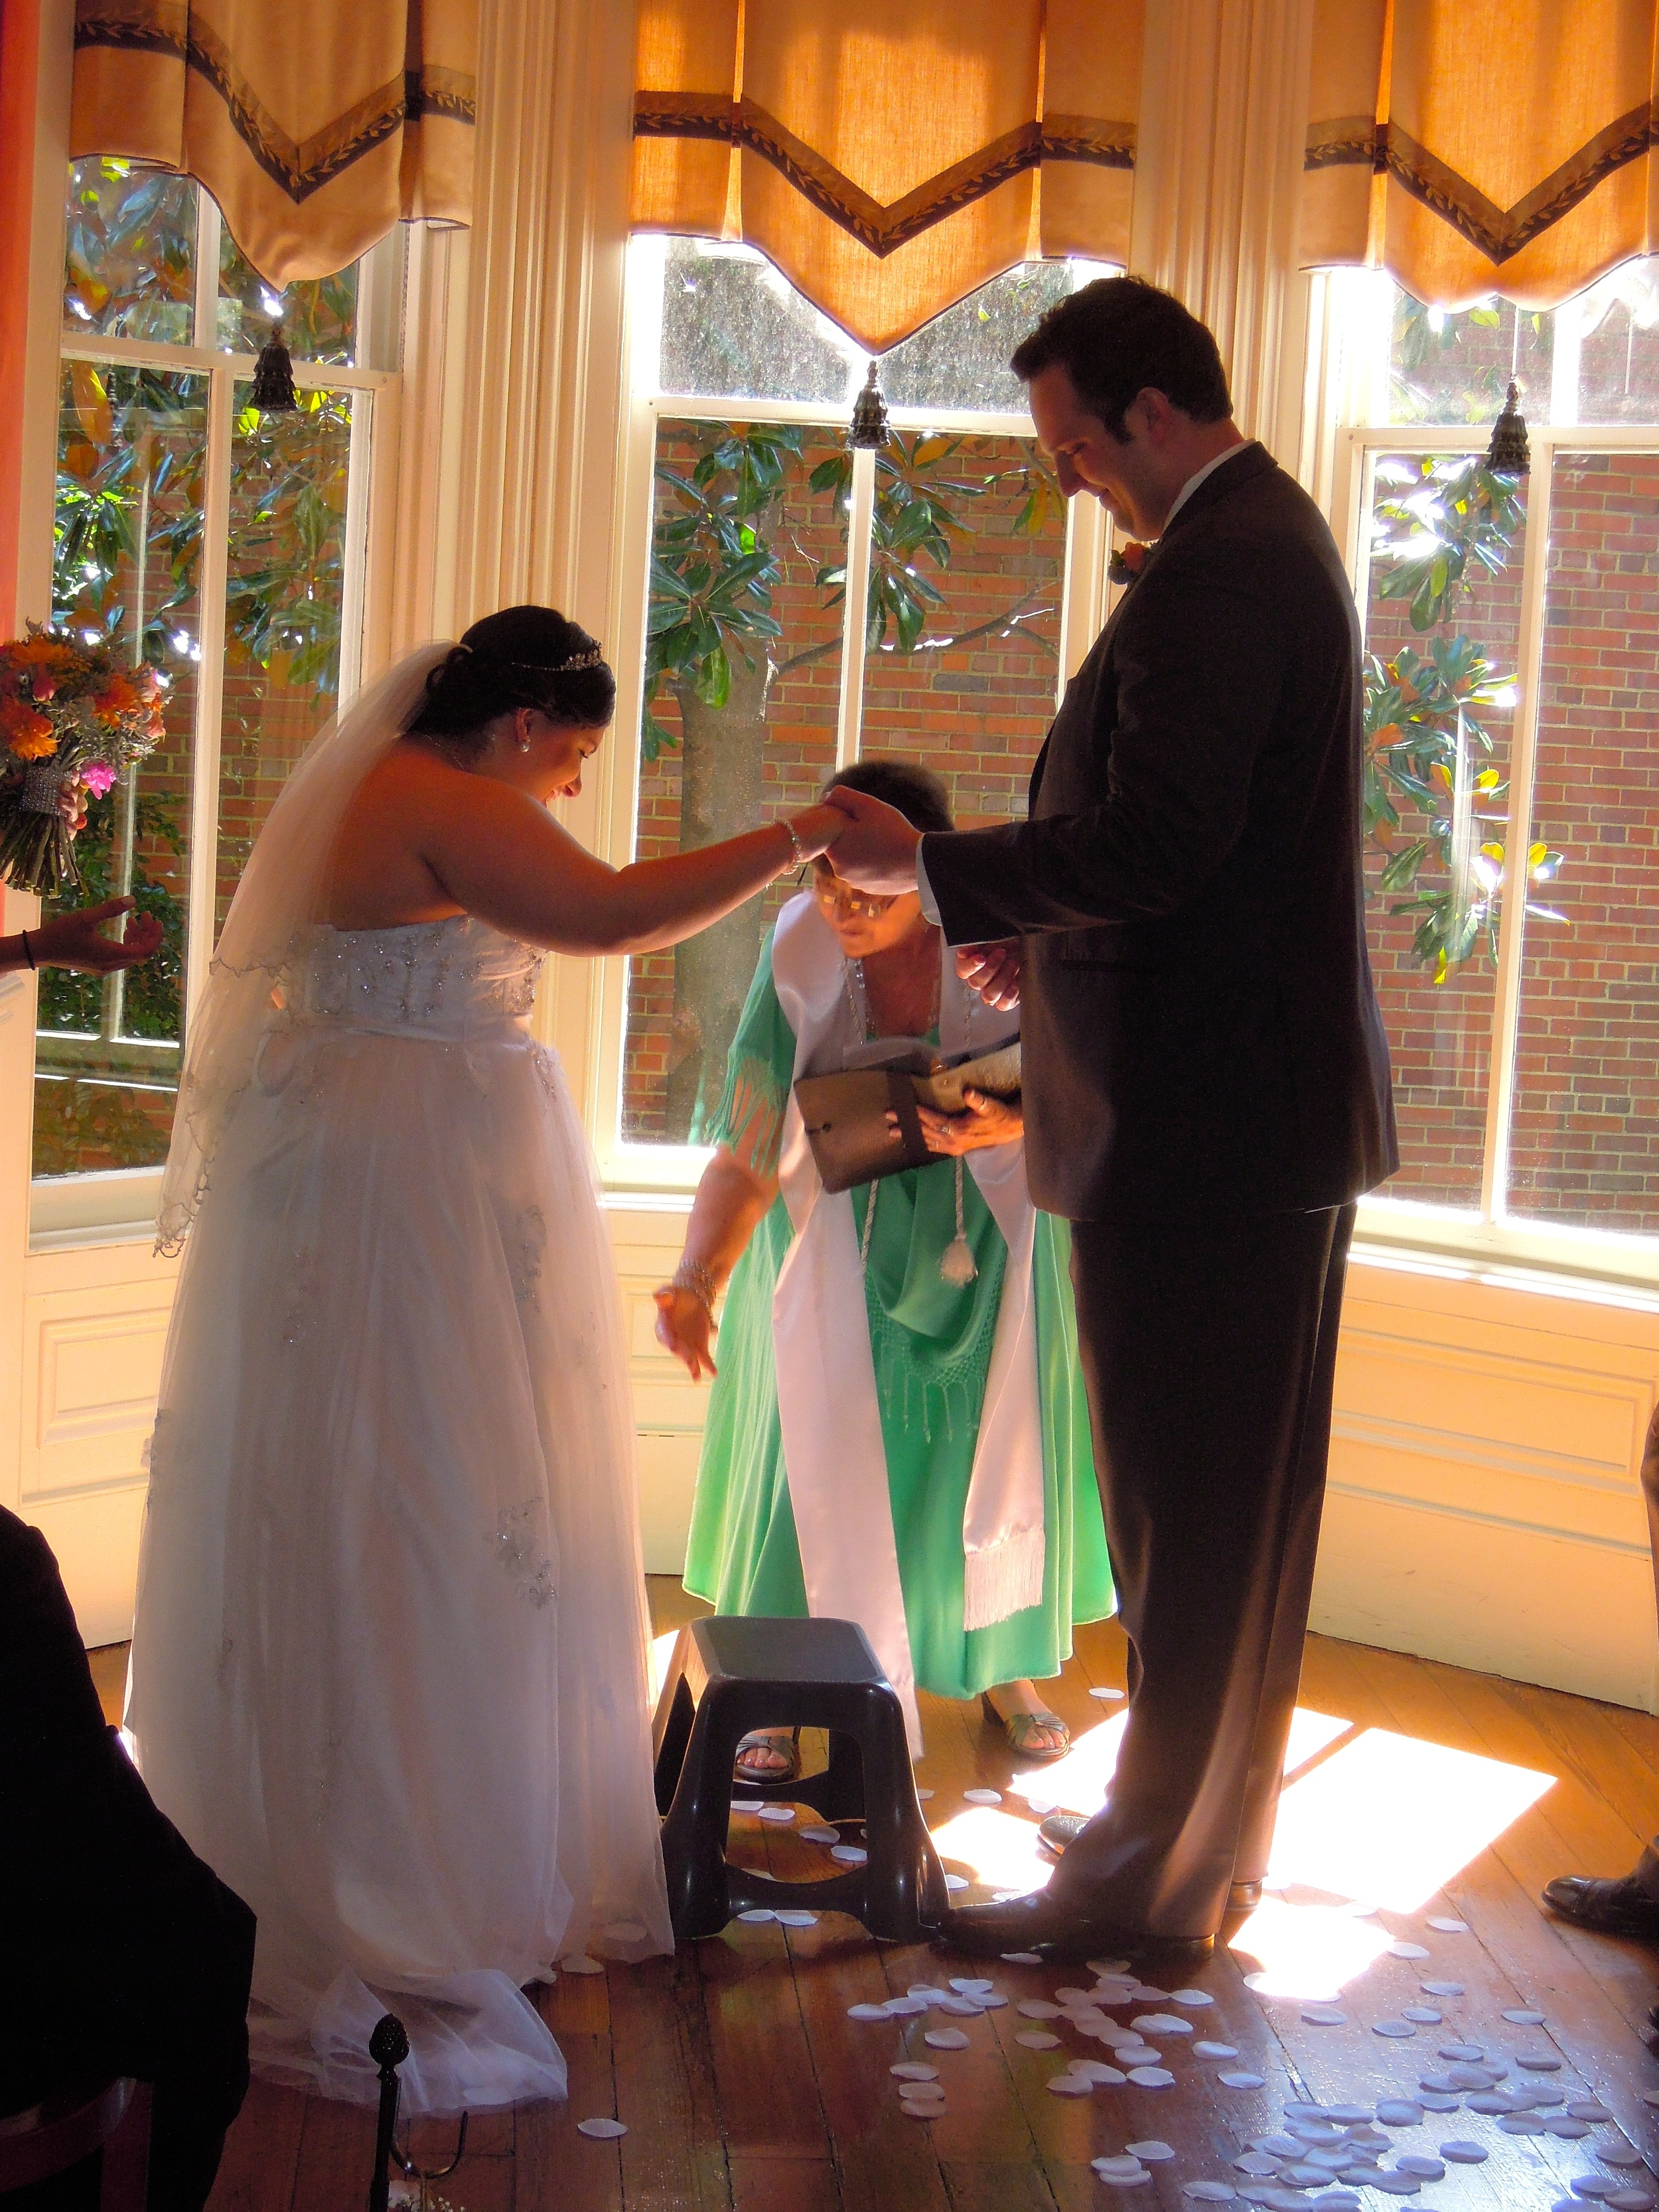 Bride stepping up onto stool for the kiss!